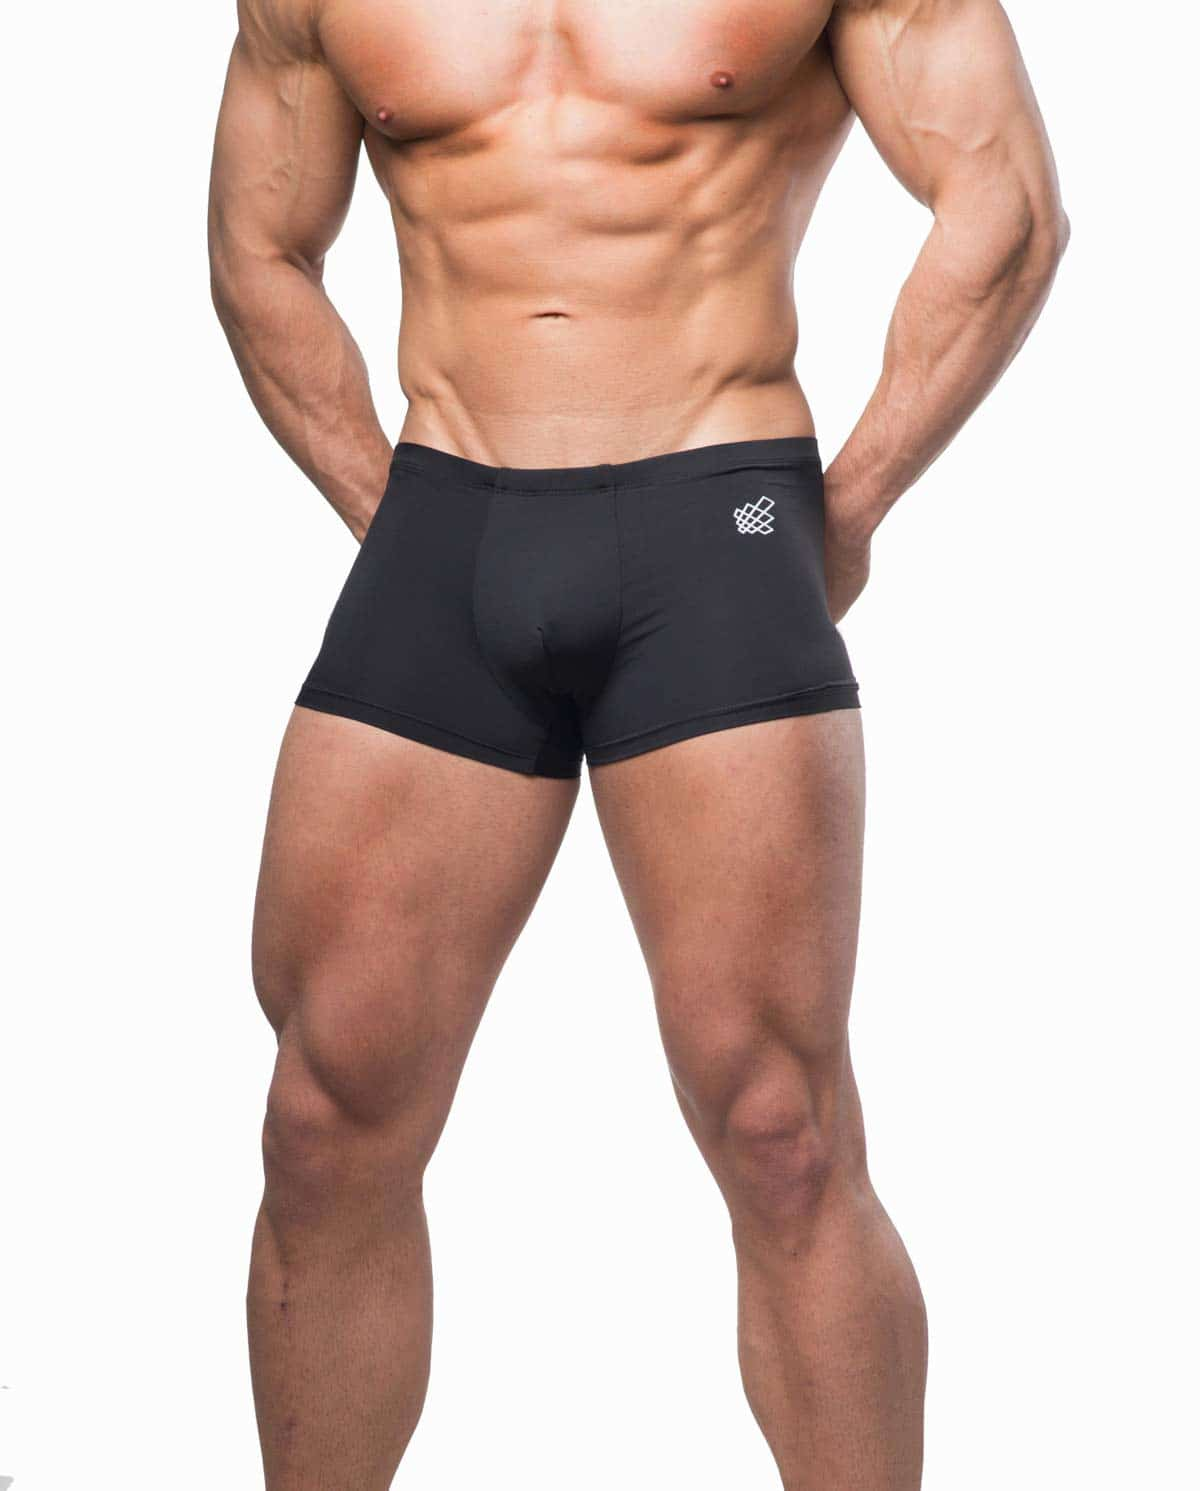 Male underwear model wearing Jed North Align Mens Boxer Brief